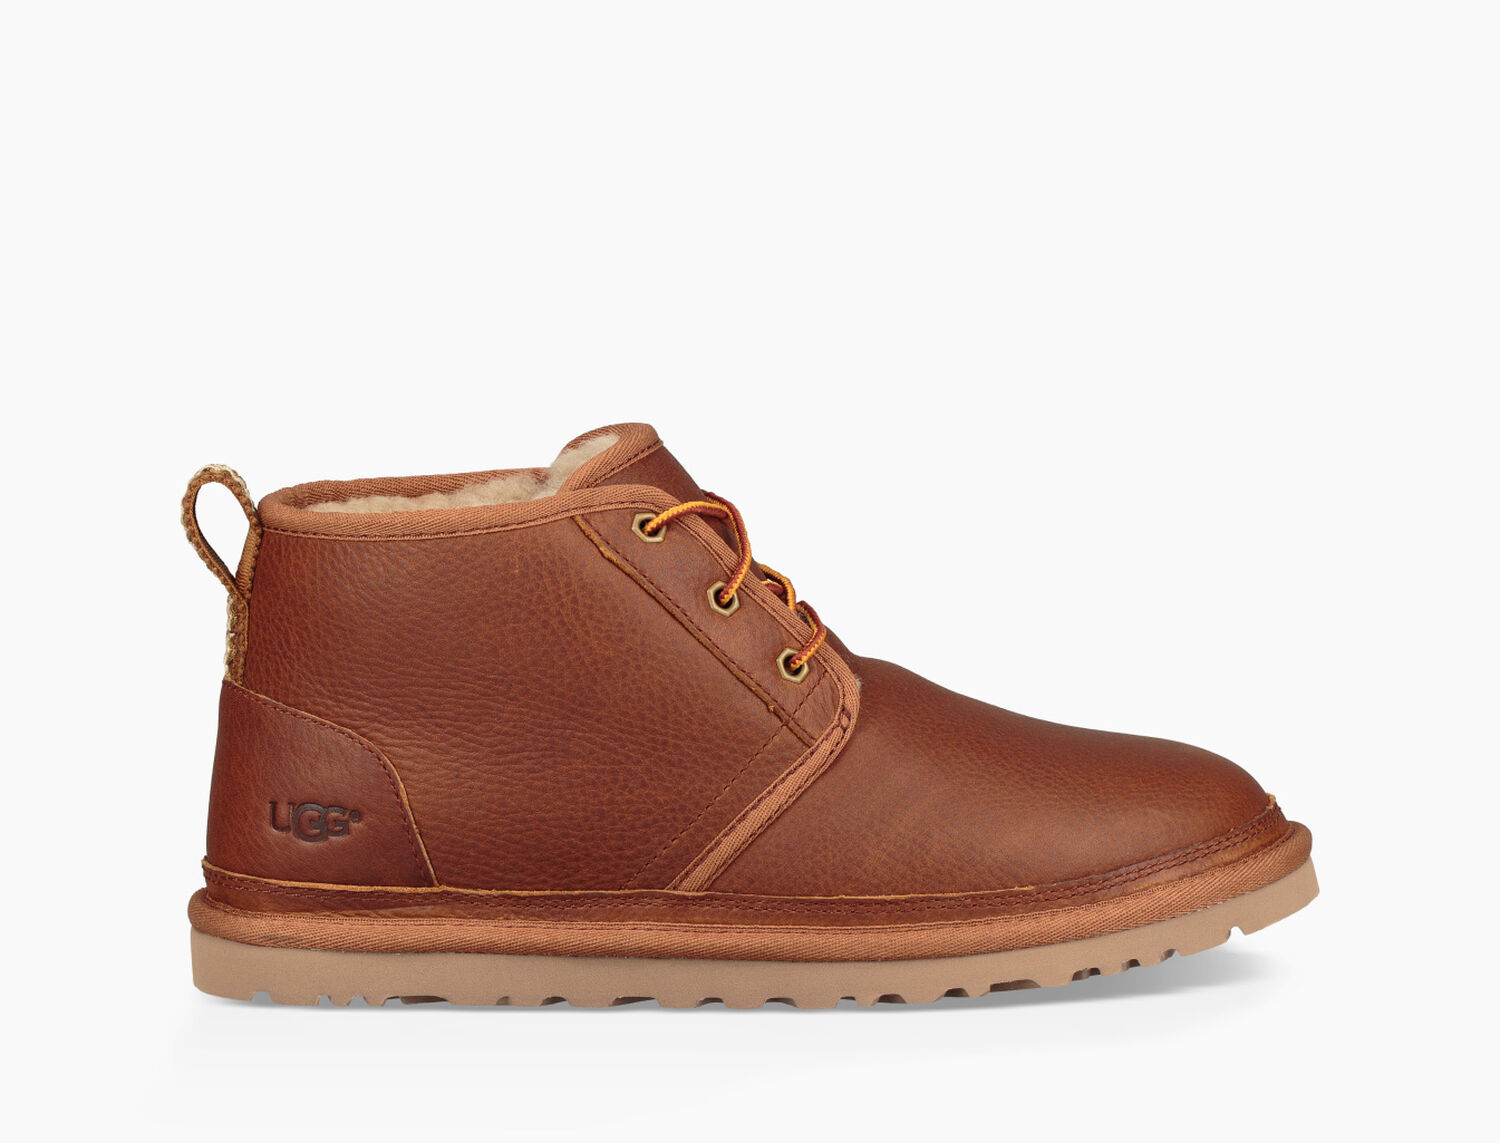 98cd4b2ee8a Men's Share this product Leather Neumel Boot